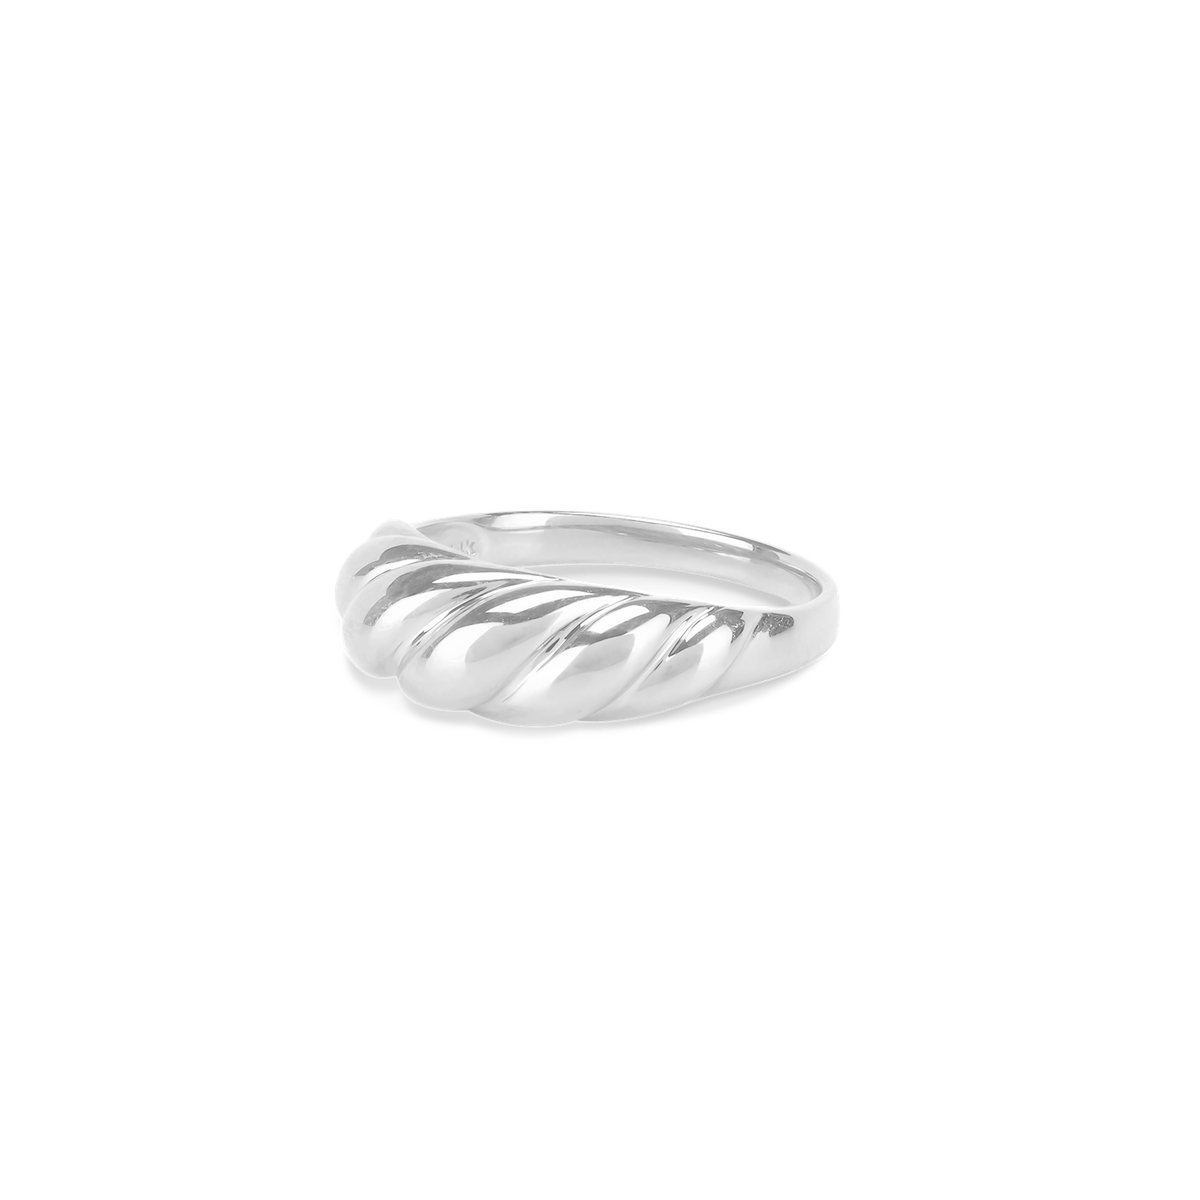 Thin Croissant Dôme Ring in 14K White Gold